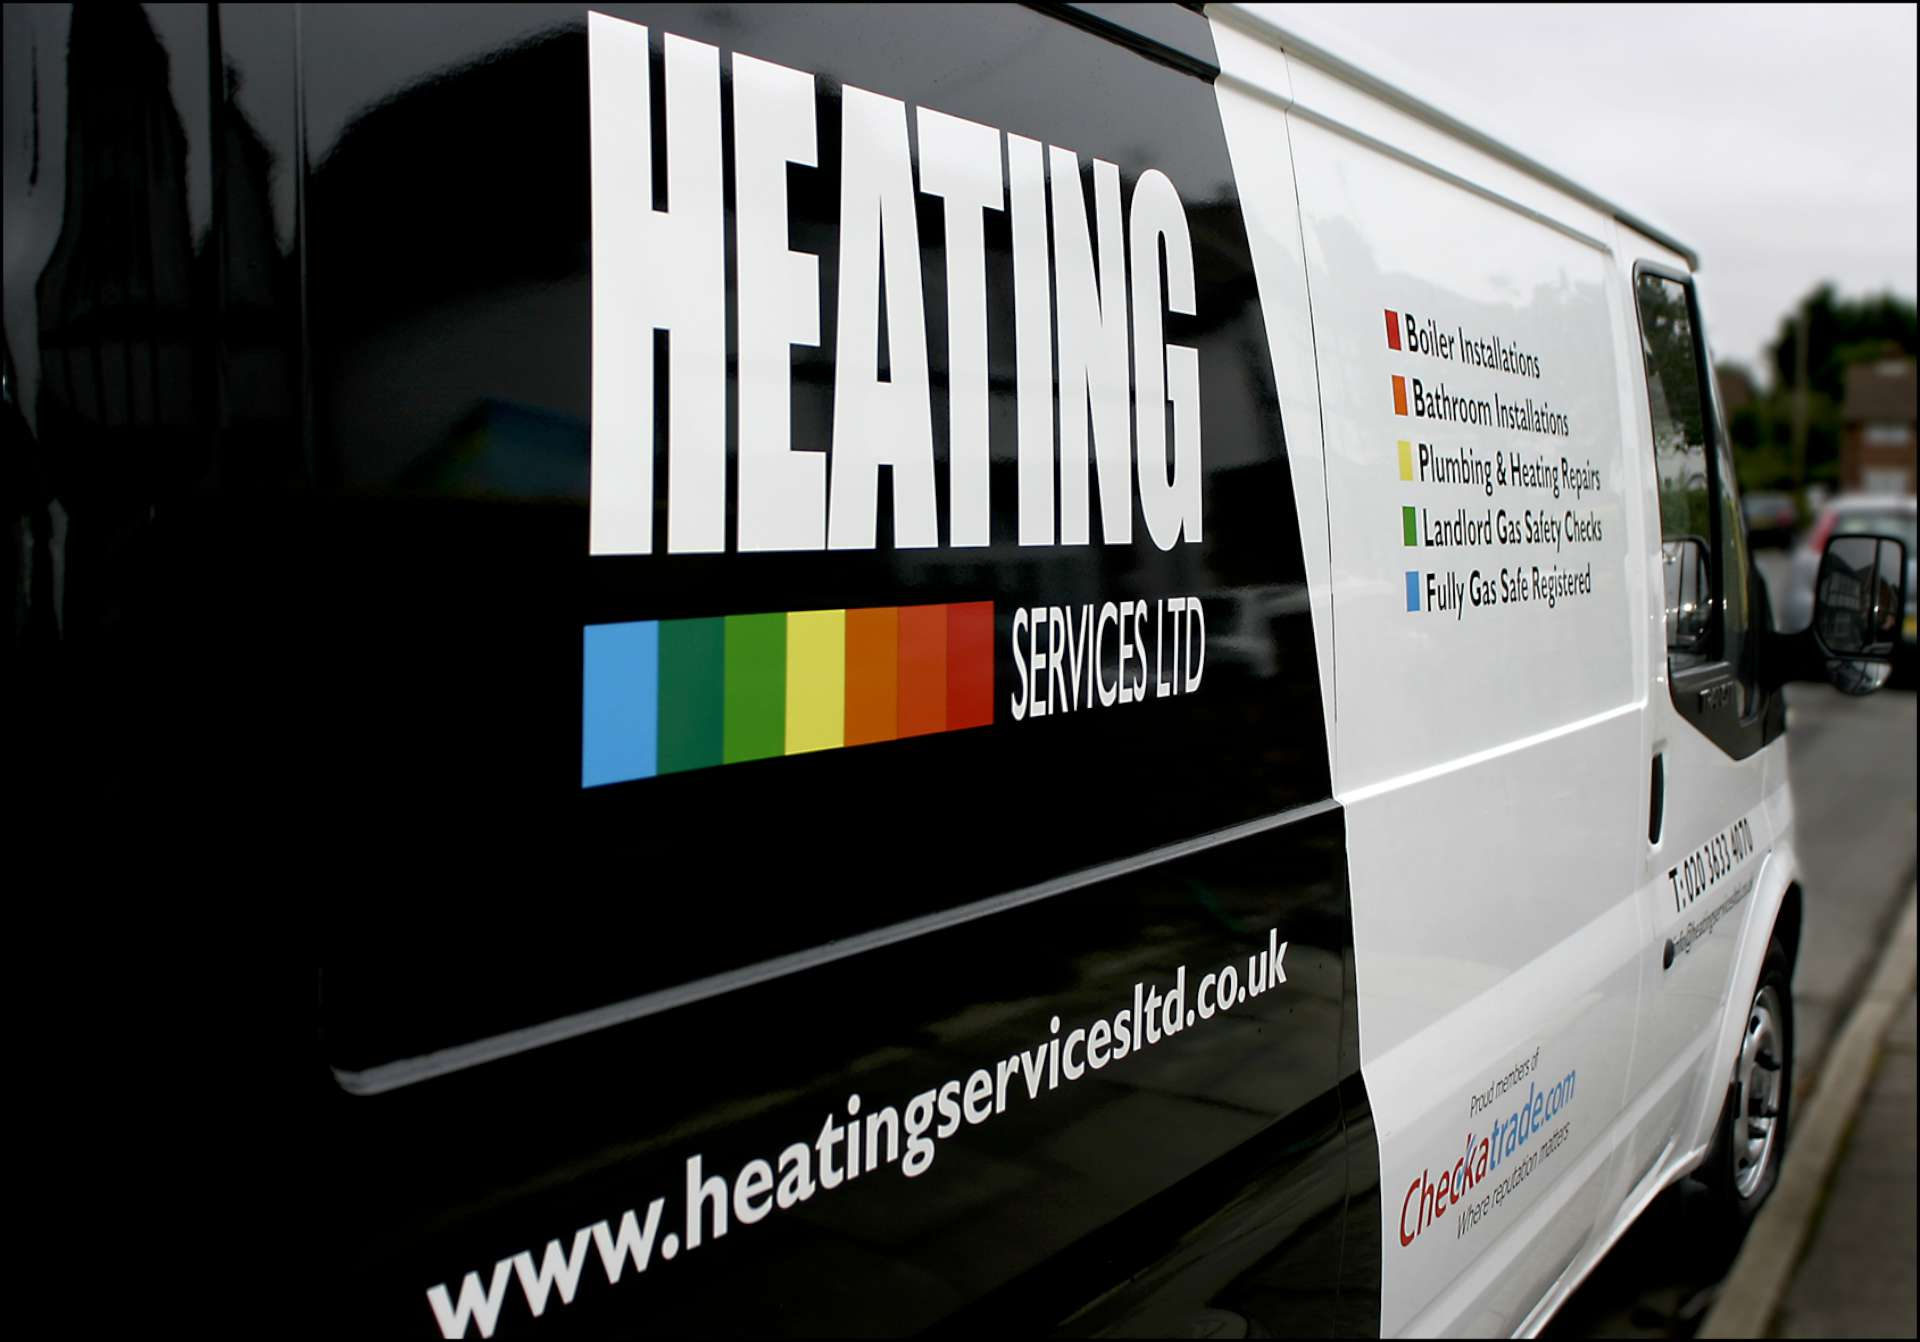 Plumbers_ Boiler Installation_ Service and Repairs and Bathroom Design and Installation by Heating Services Ltd in Welling (2)